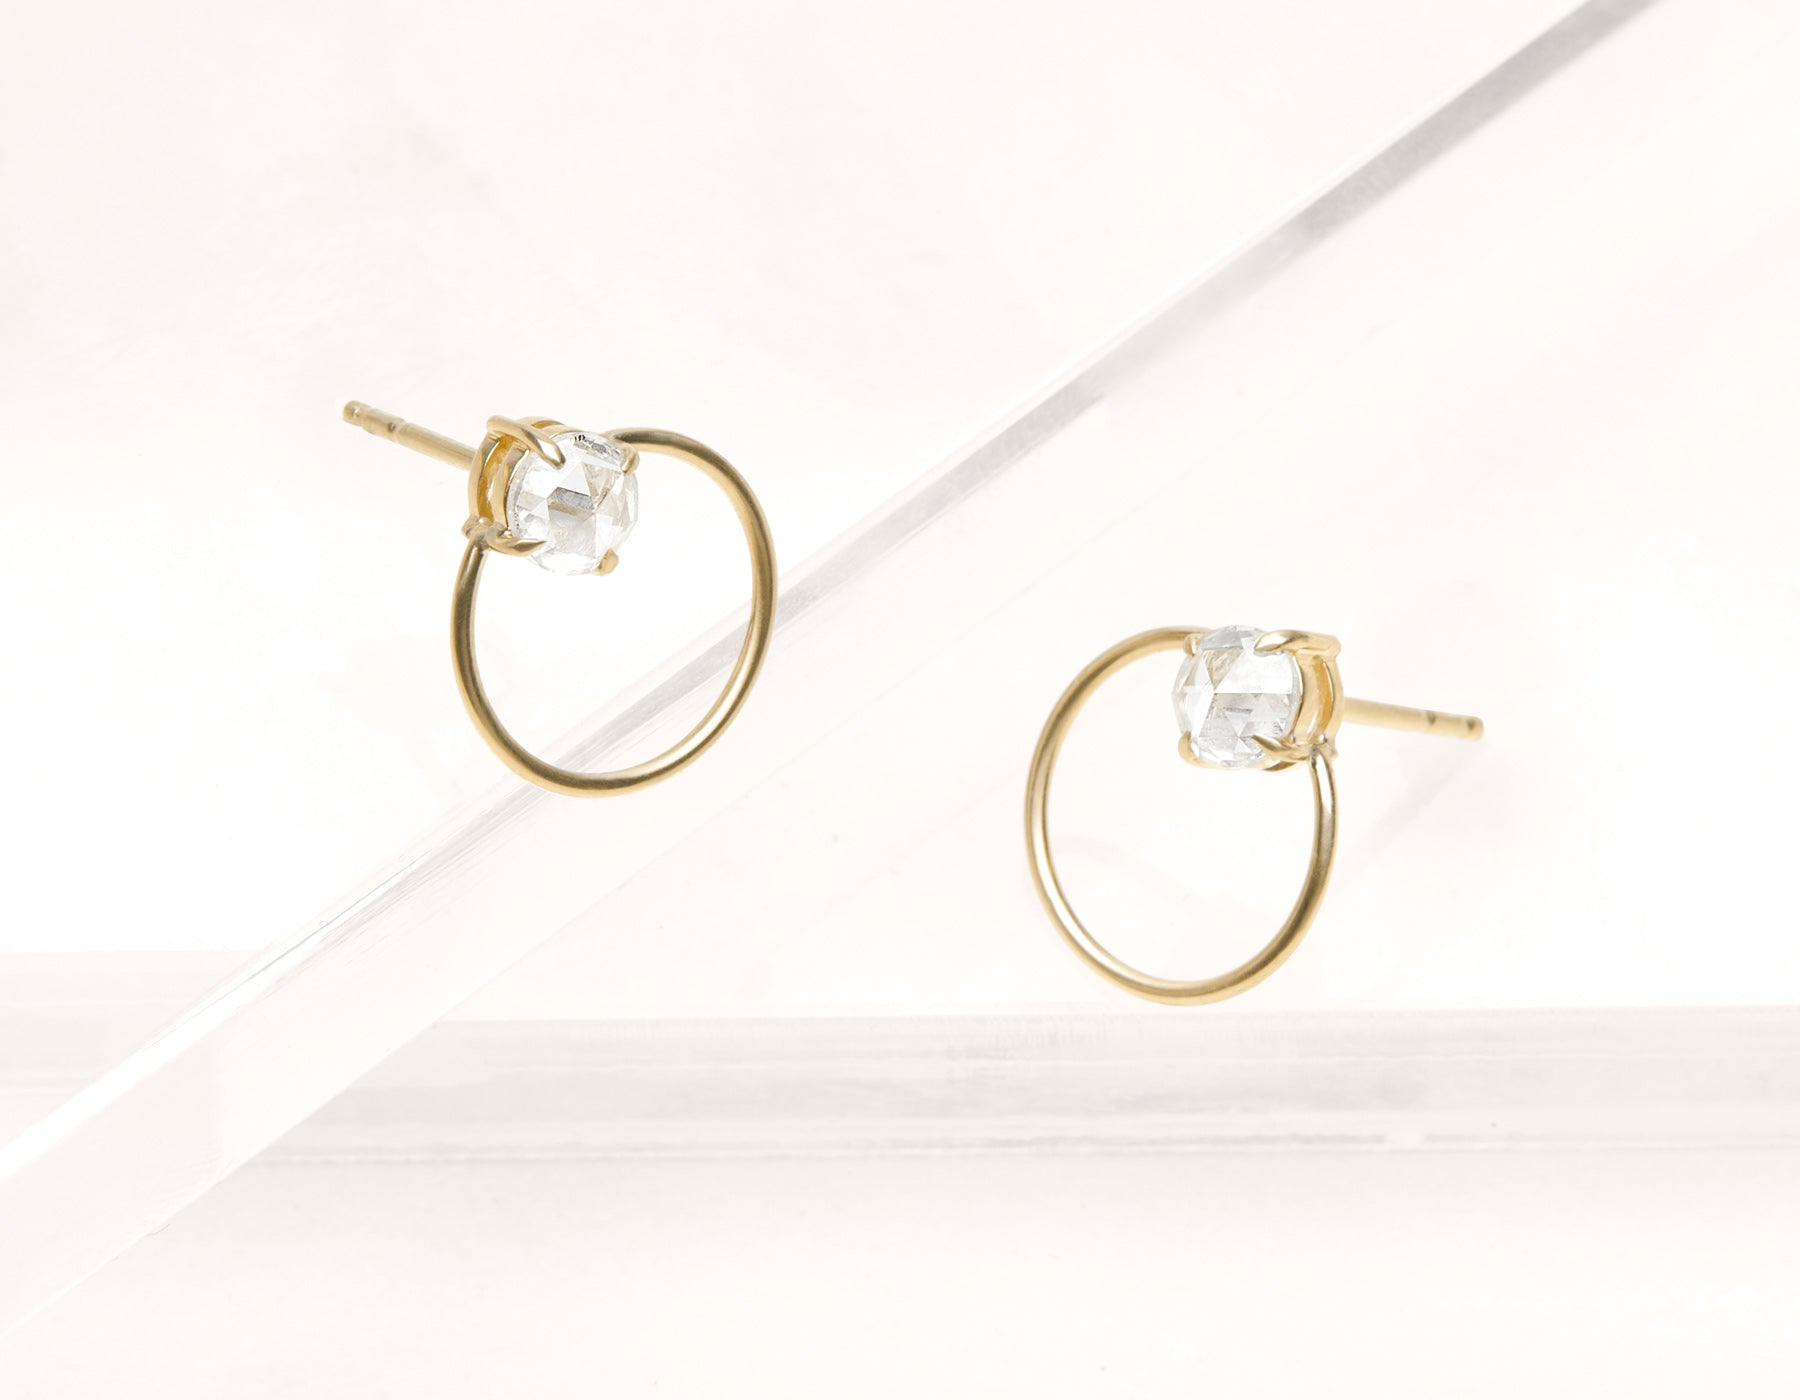 Minimalist elegant 18k solid gold rose cut Diamond Door Knock Studs hoop earring Vrai & Oro black label, 18K Yellow Gold